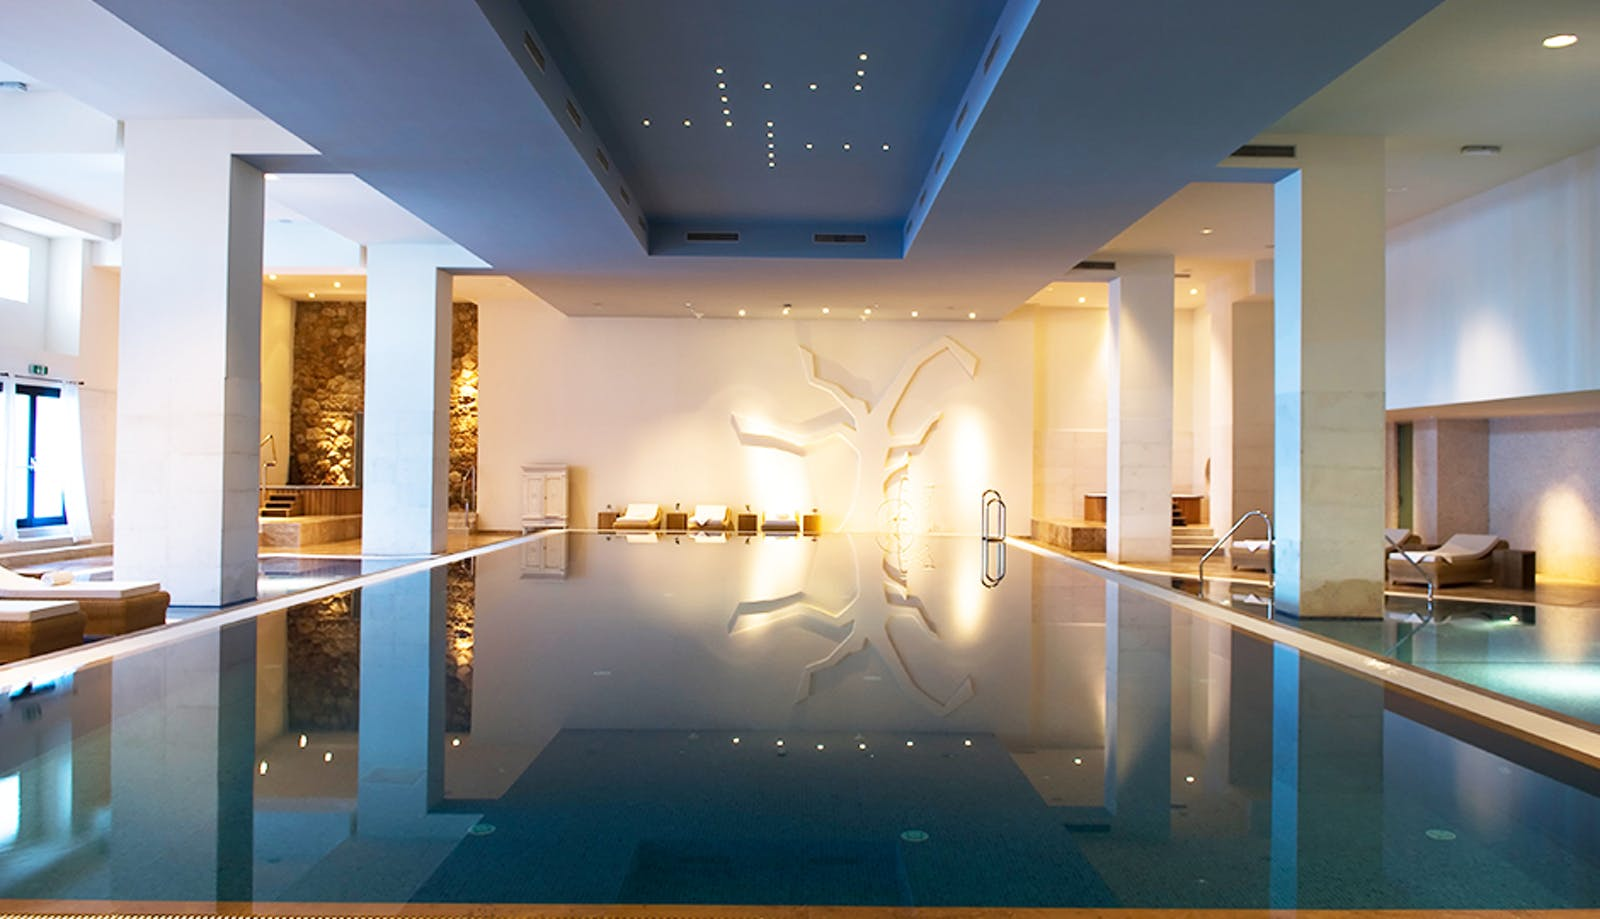 Indoor Pool Area at Hotel Excelsior, Dubrovnik, Croatia